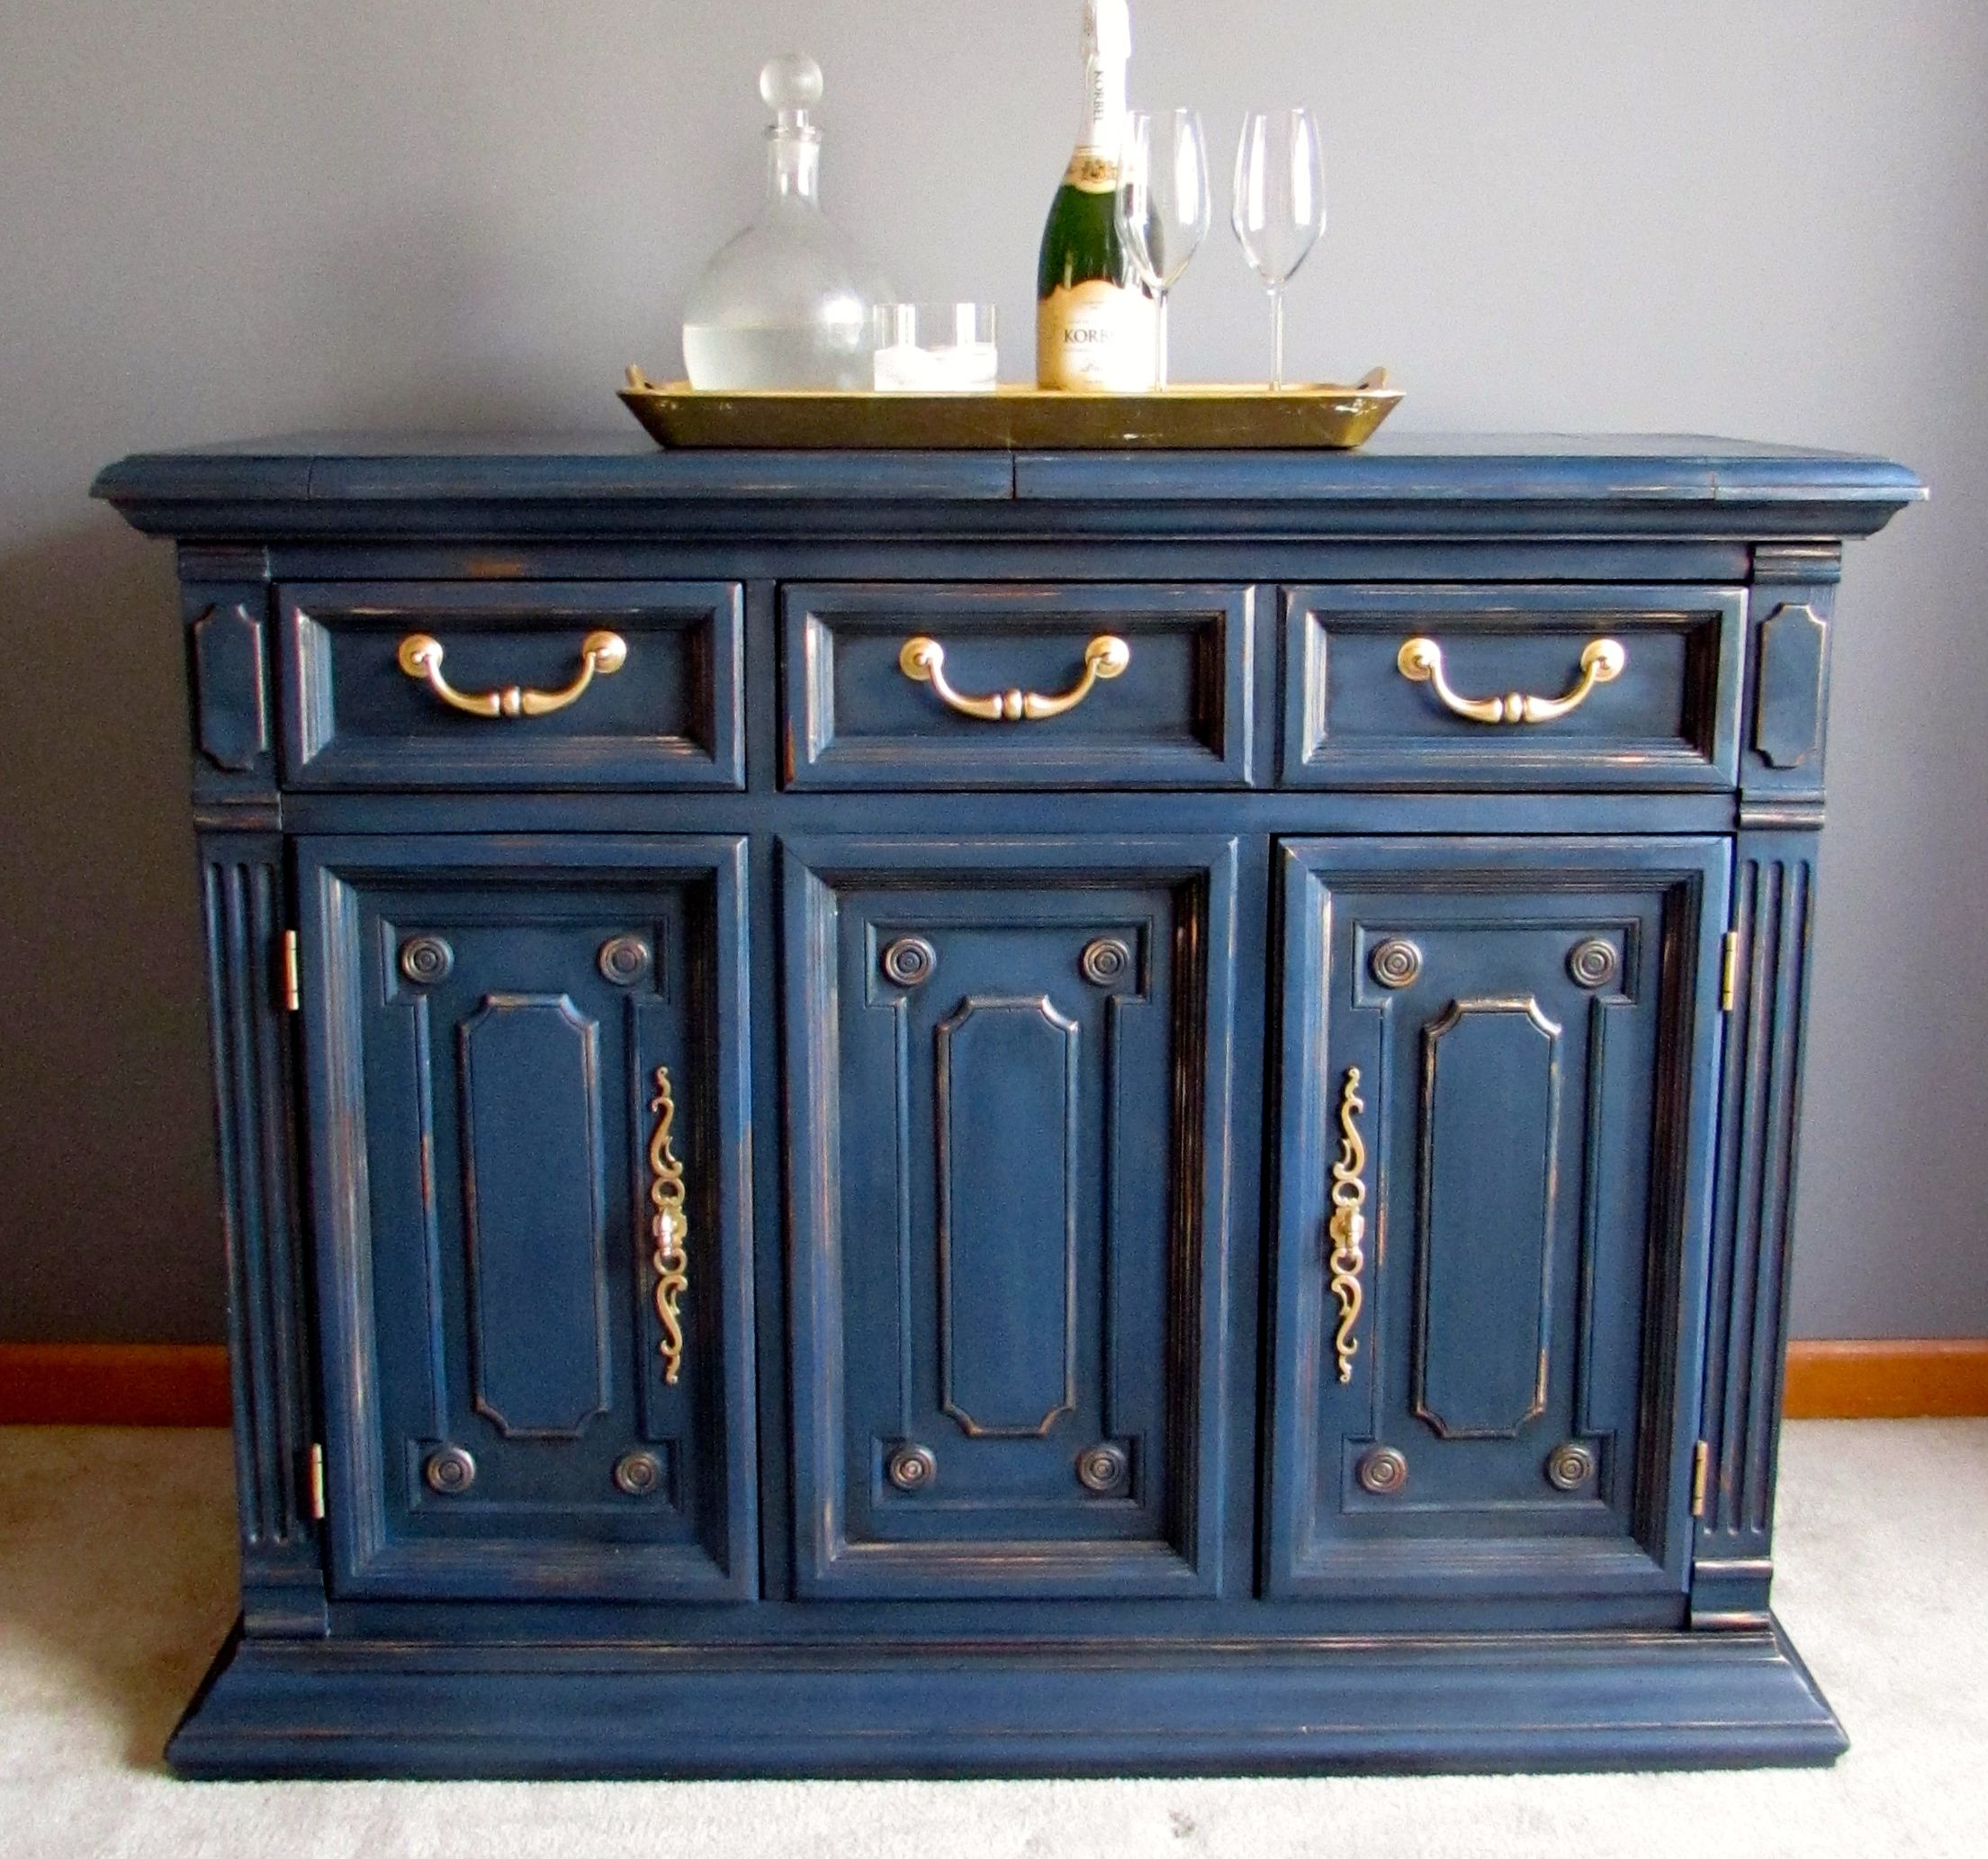 Astounding Sideboard Buffet Was Painted In Napoleonic Blue Chalk Paint Download Free Architecture Designs Embacsunscenecom